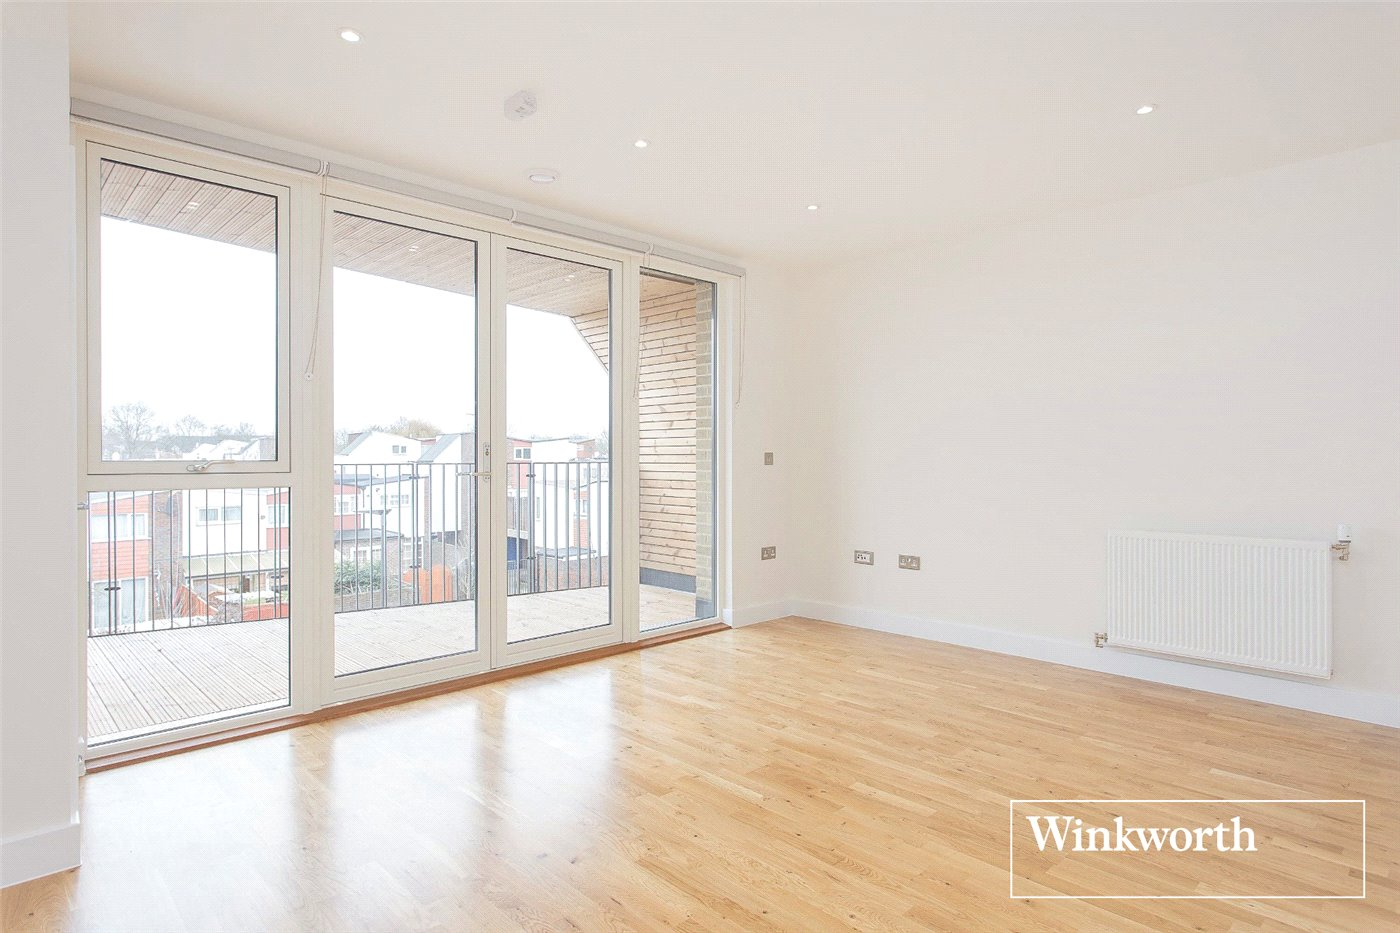 2 Bedroom Flat To Rent Panavia Court Bristol Avenue London Nw Shepherd S Bush Nw9 5fb